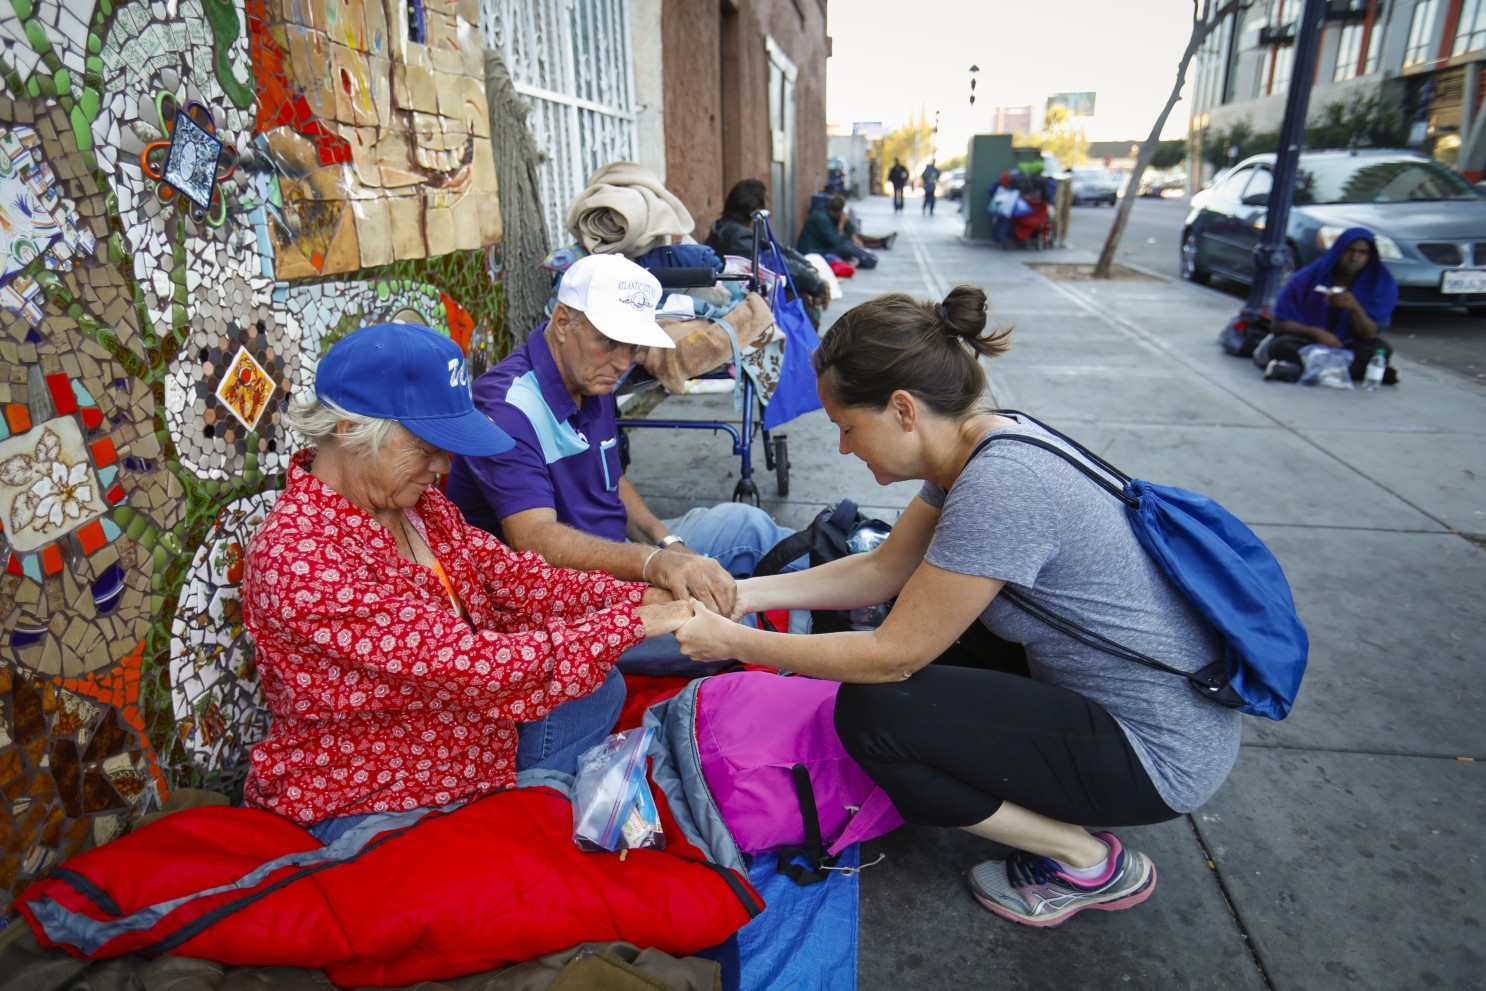 How Humble Churches Across the Nation Are Helping the Homeless